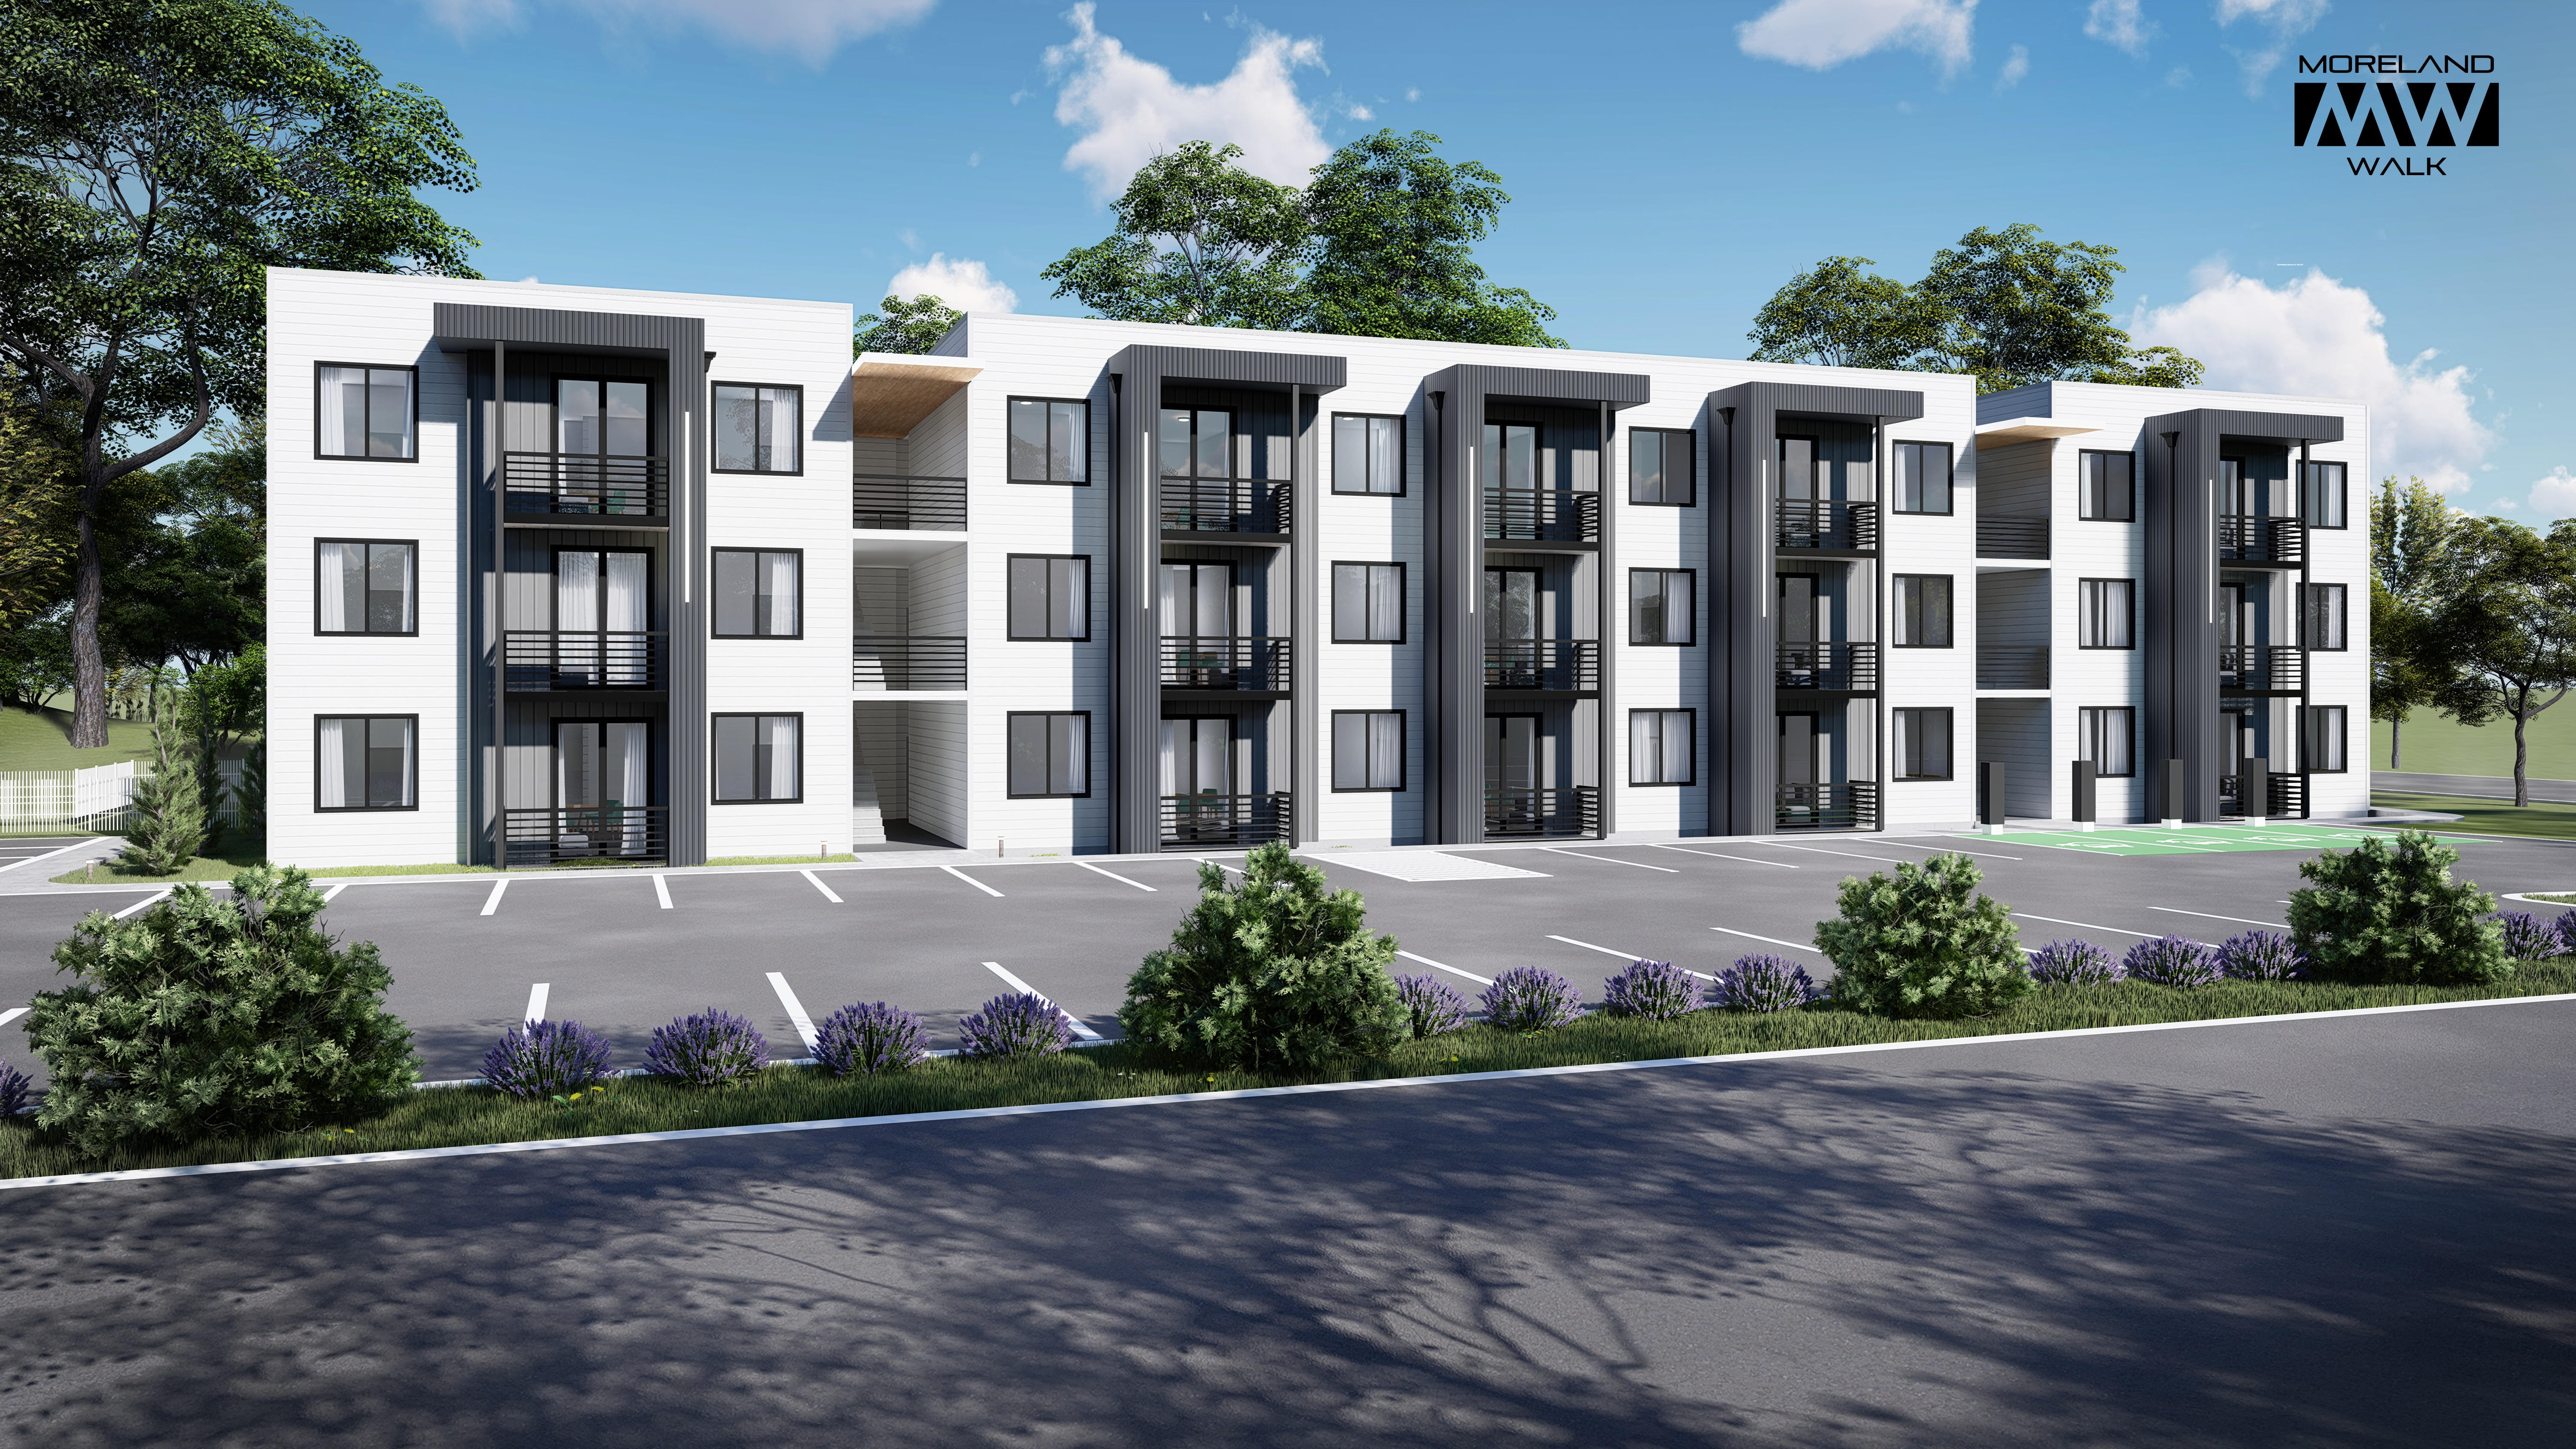 A three-story complex of condos next to a parking lot under a blue sky in renderings.